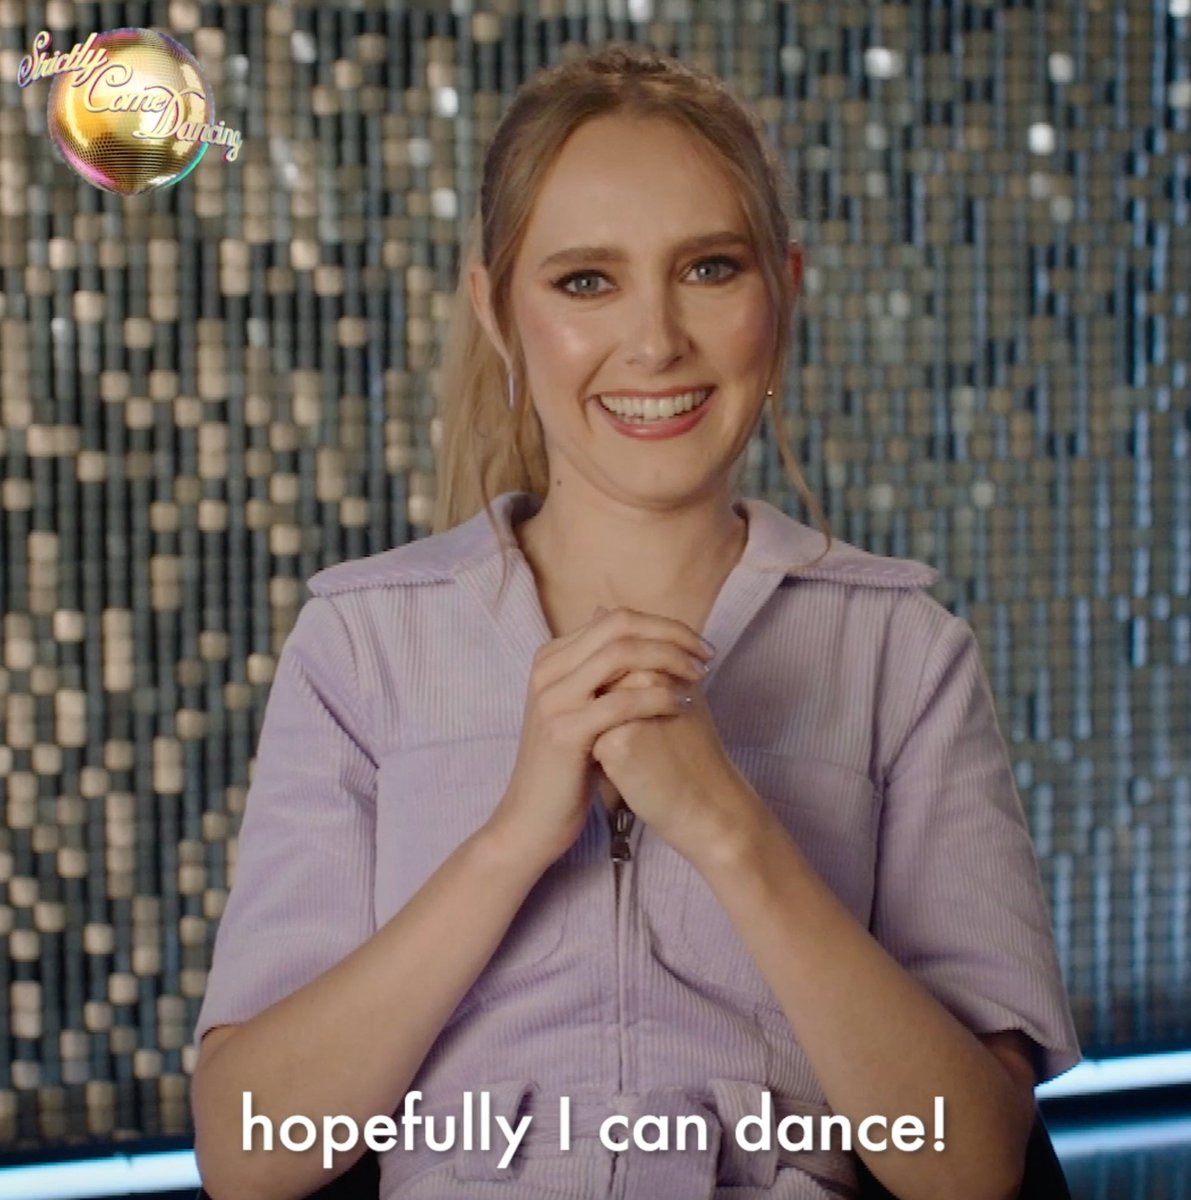 Team DA can't wait to watch @RoseAylingEllis on Strictly this year! 💃